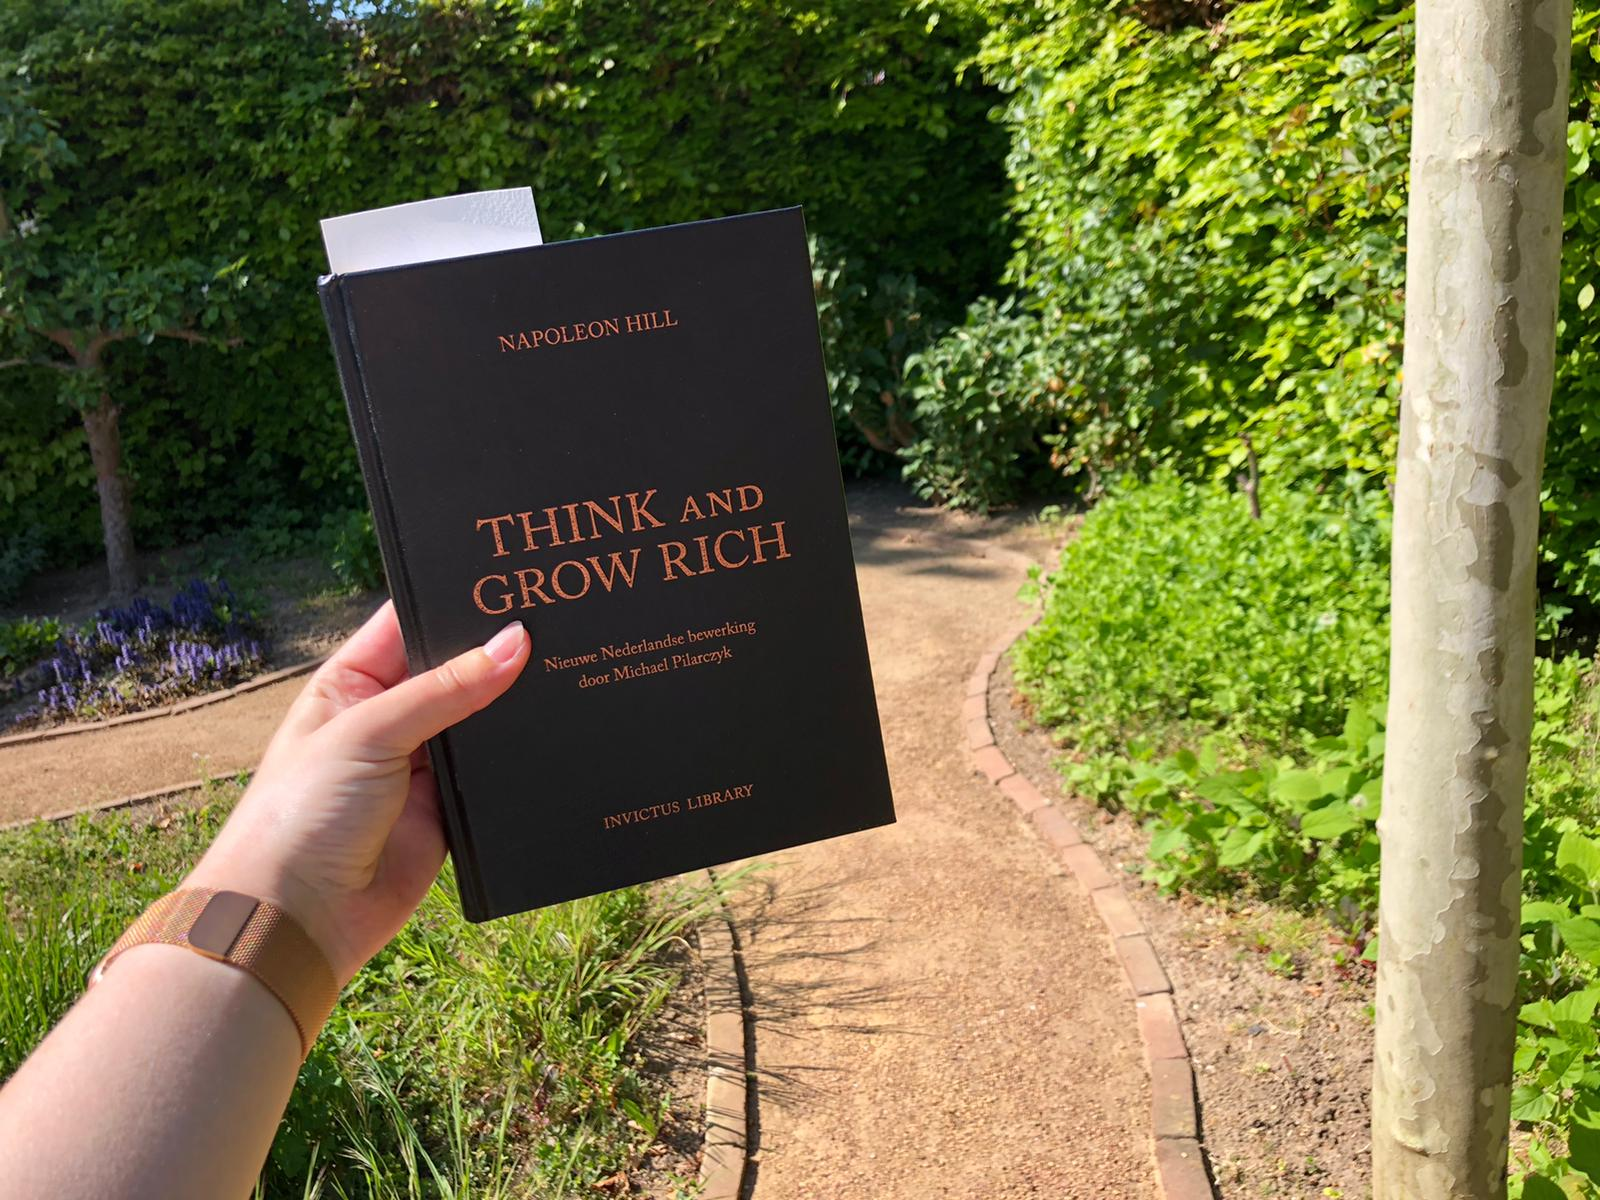 Think and grow rich lezen in de tuin